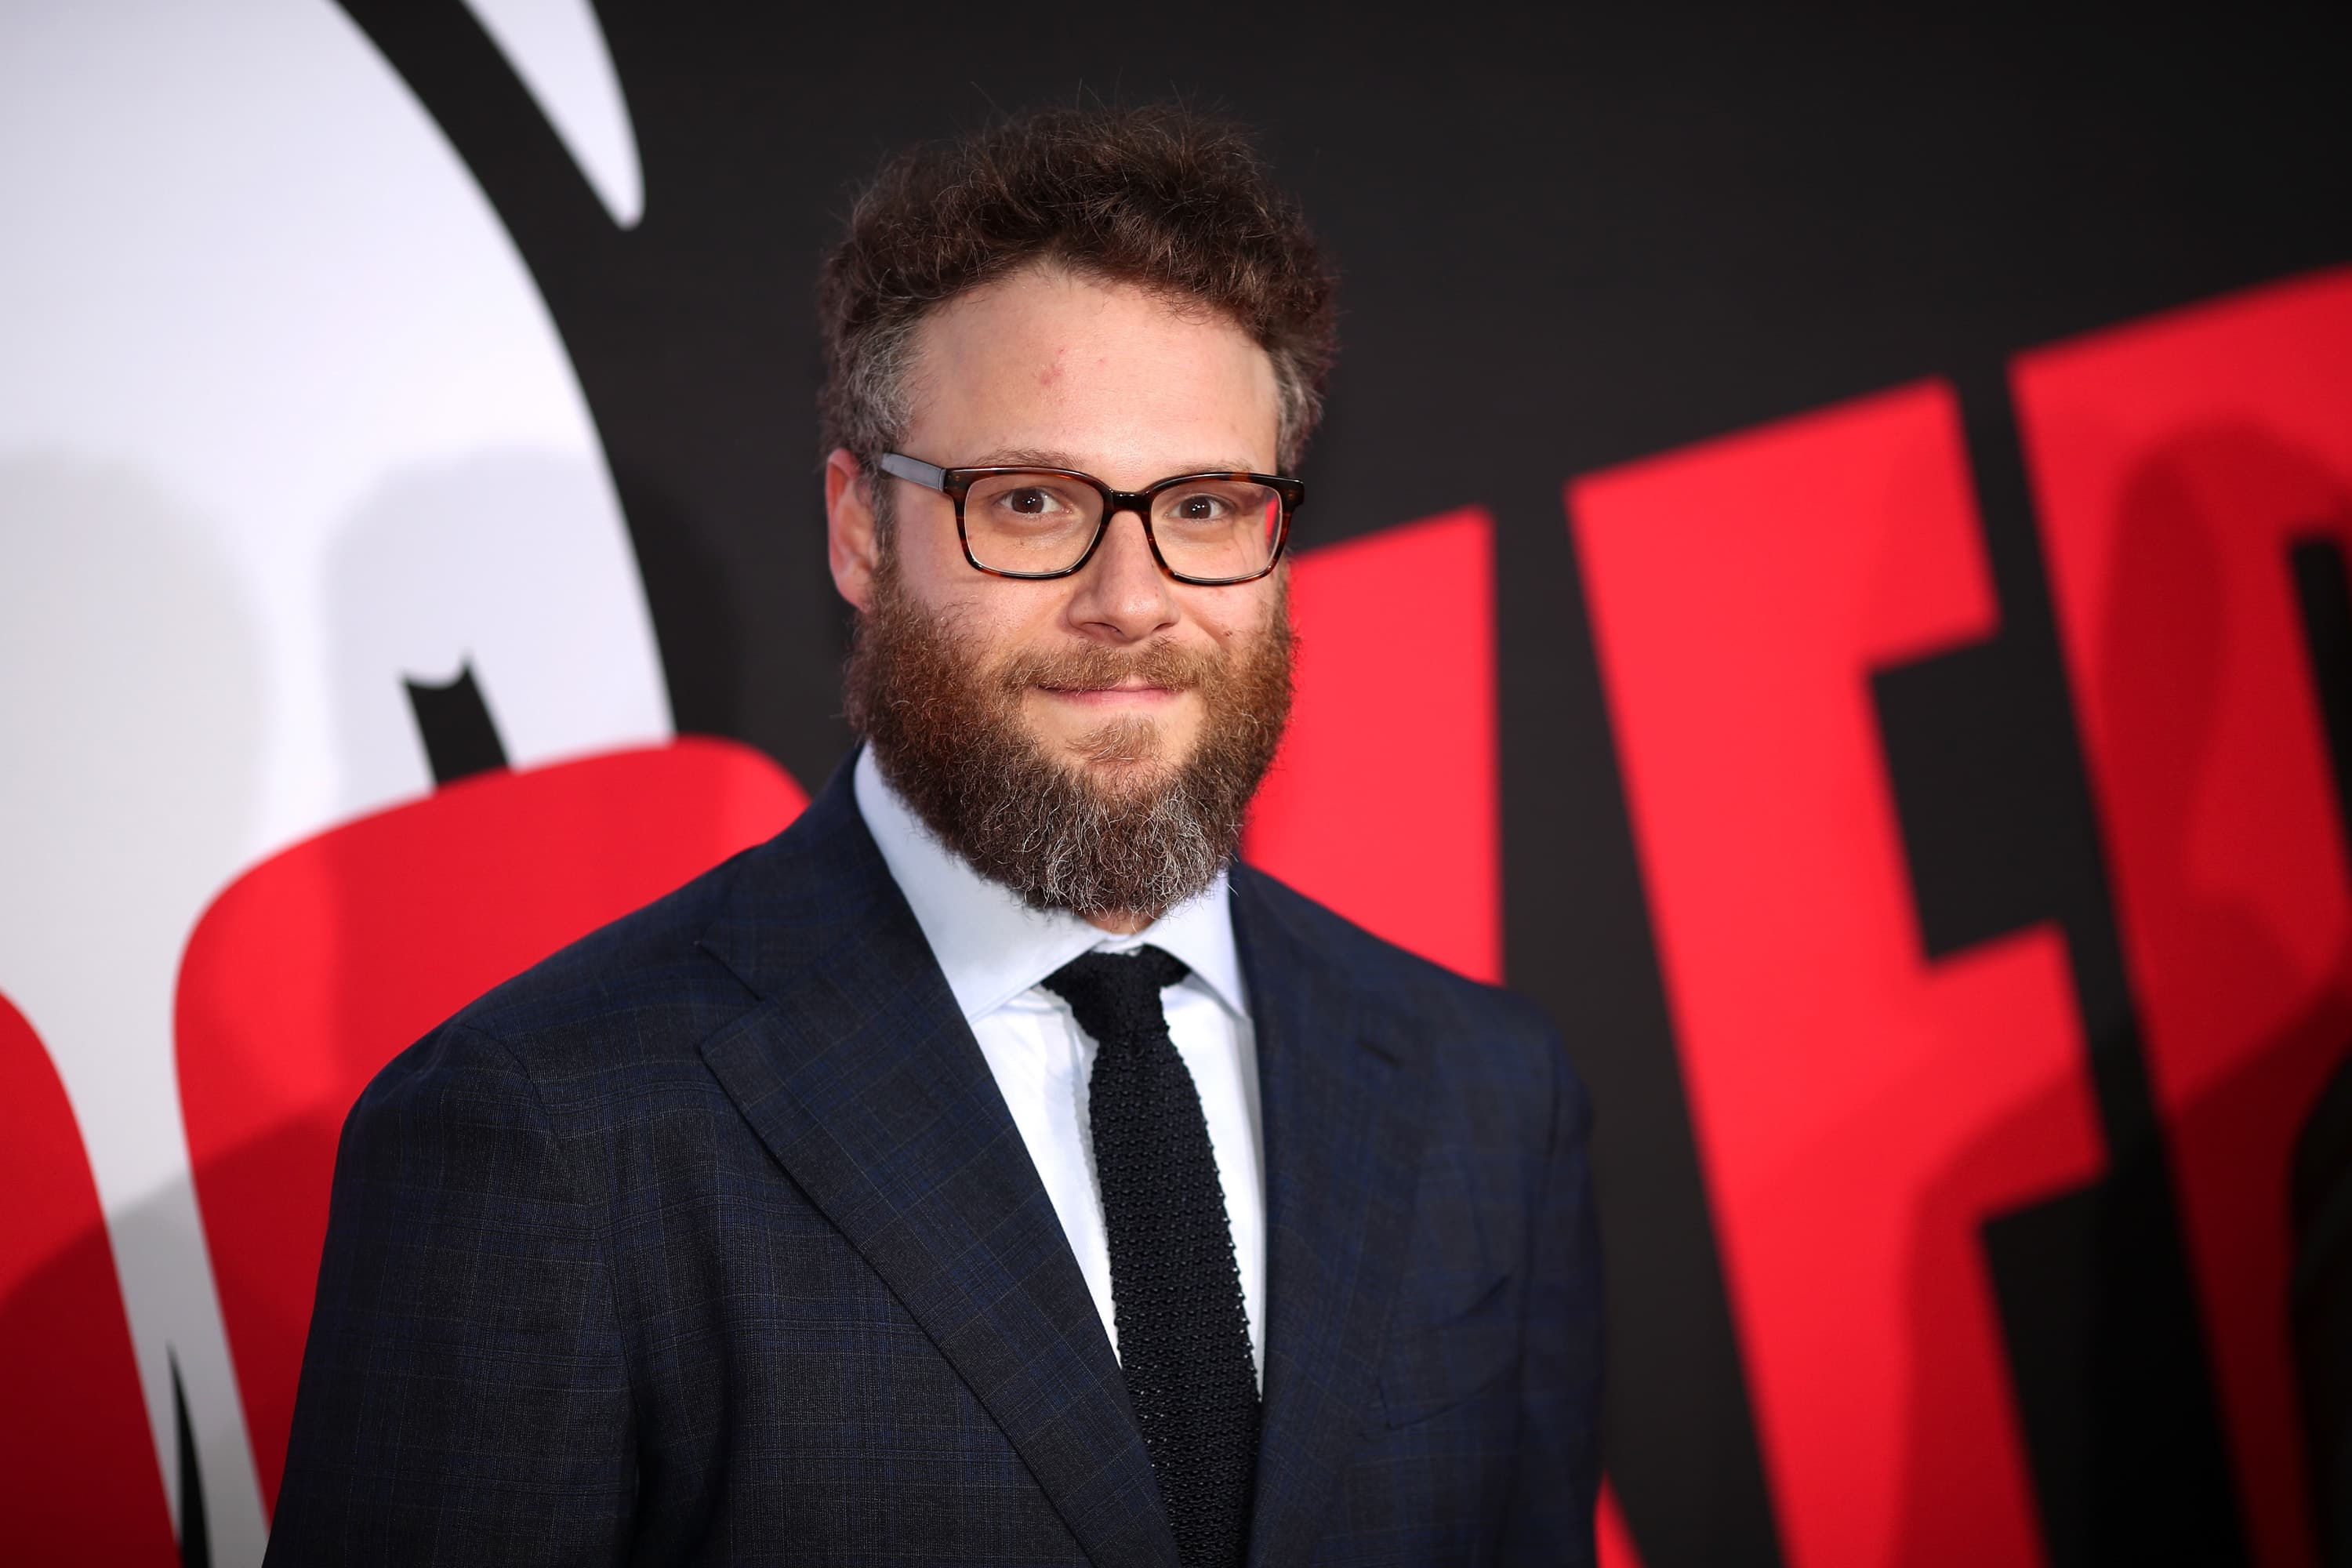 Seth Rogen is the latest celebrity to get into the weed business